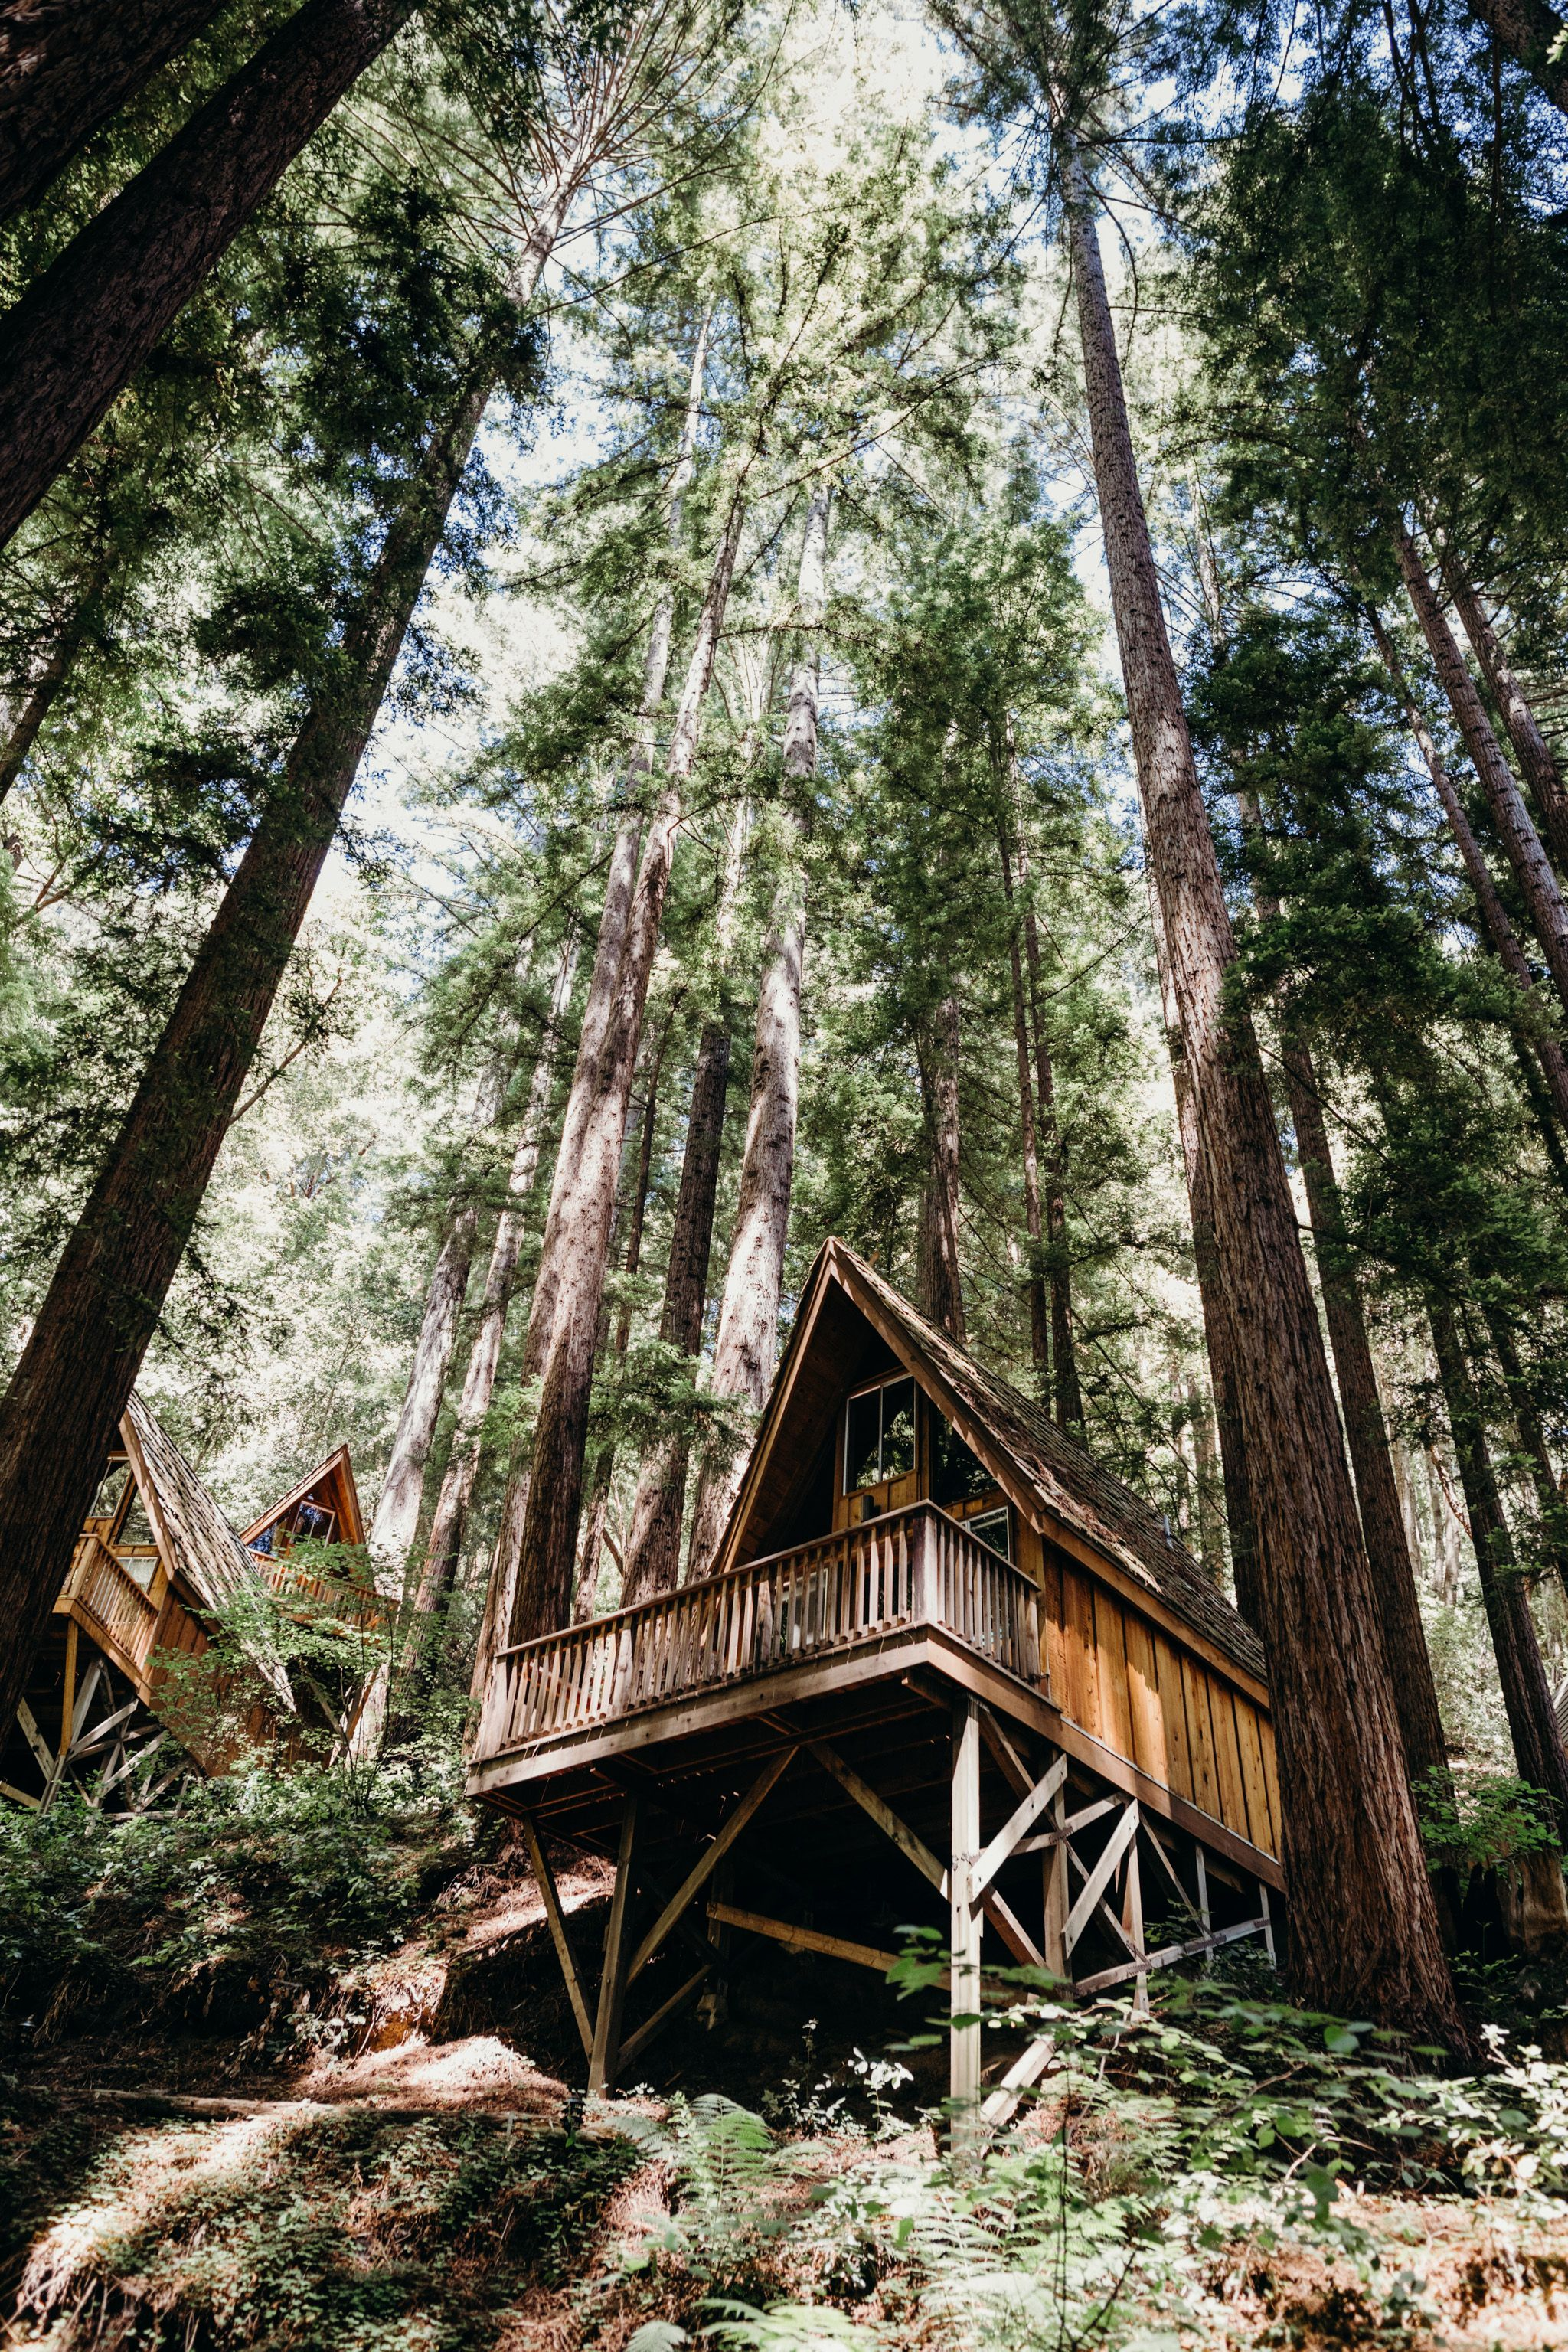 Waterfall Lodge And Retreat In Ben Lomond California Is A Wedding Venue With Camp Vibe The Santa Cruz Mountains